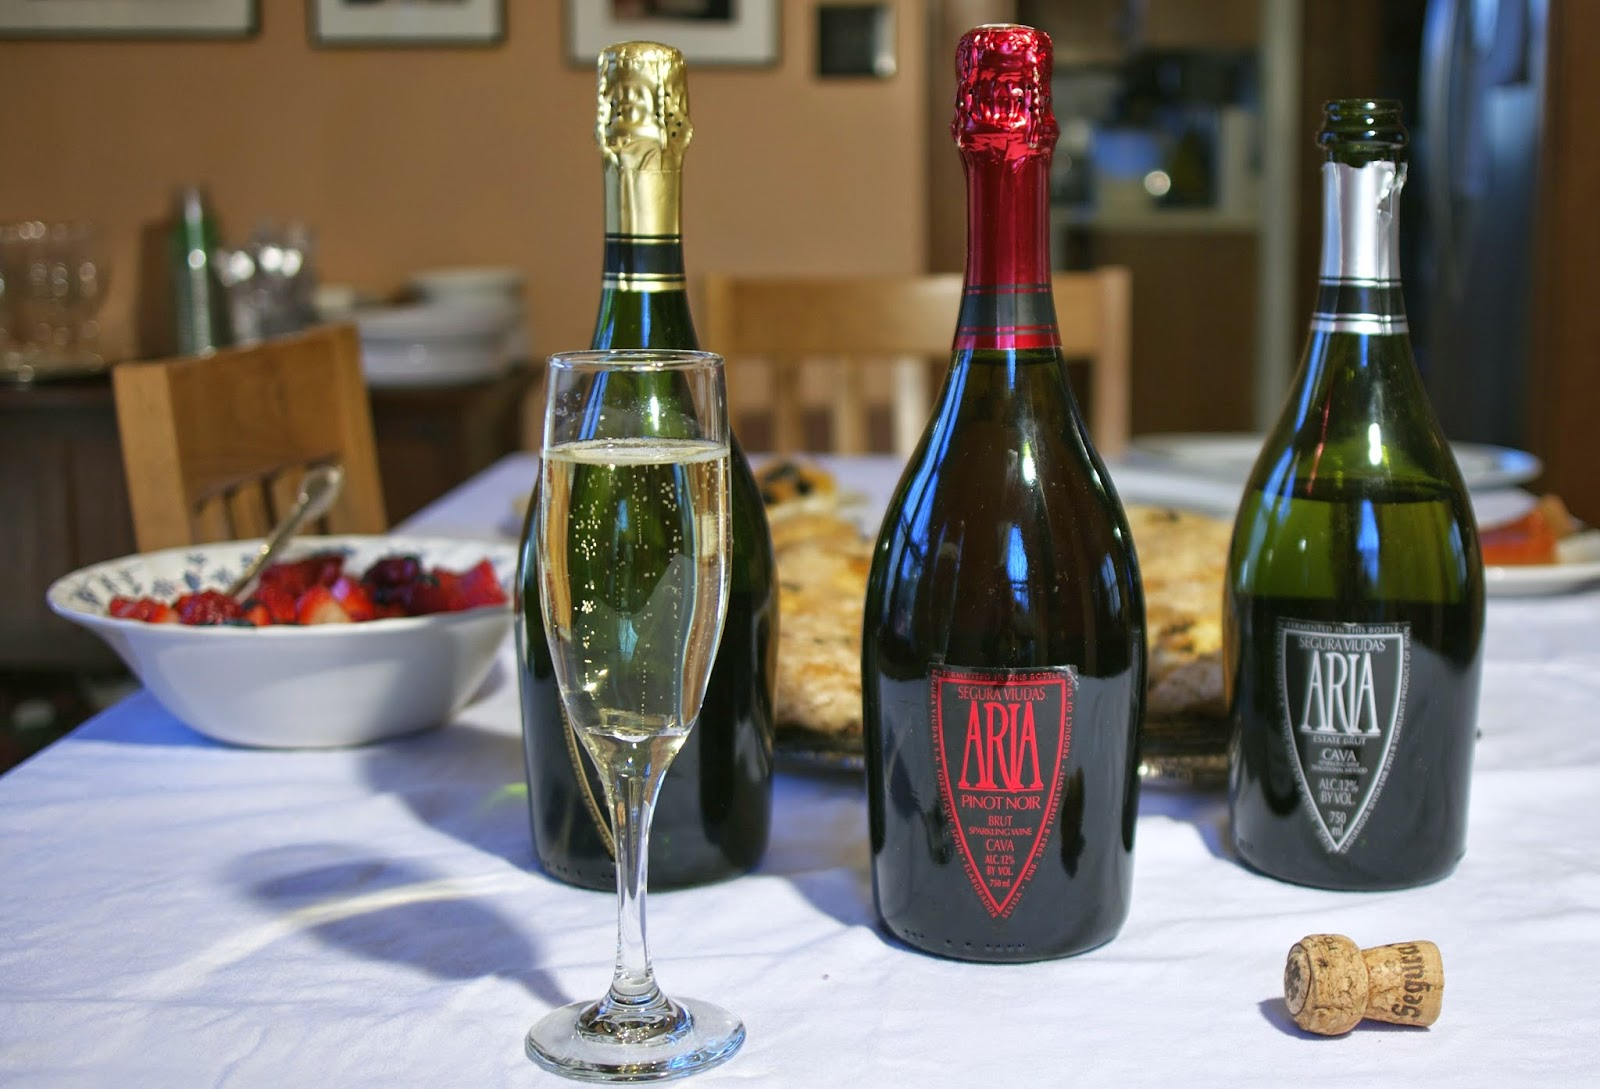 ARIA sparkling wines-simplelivingeating.com